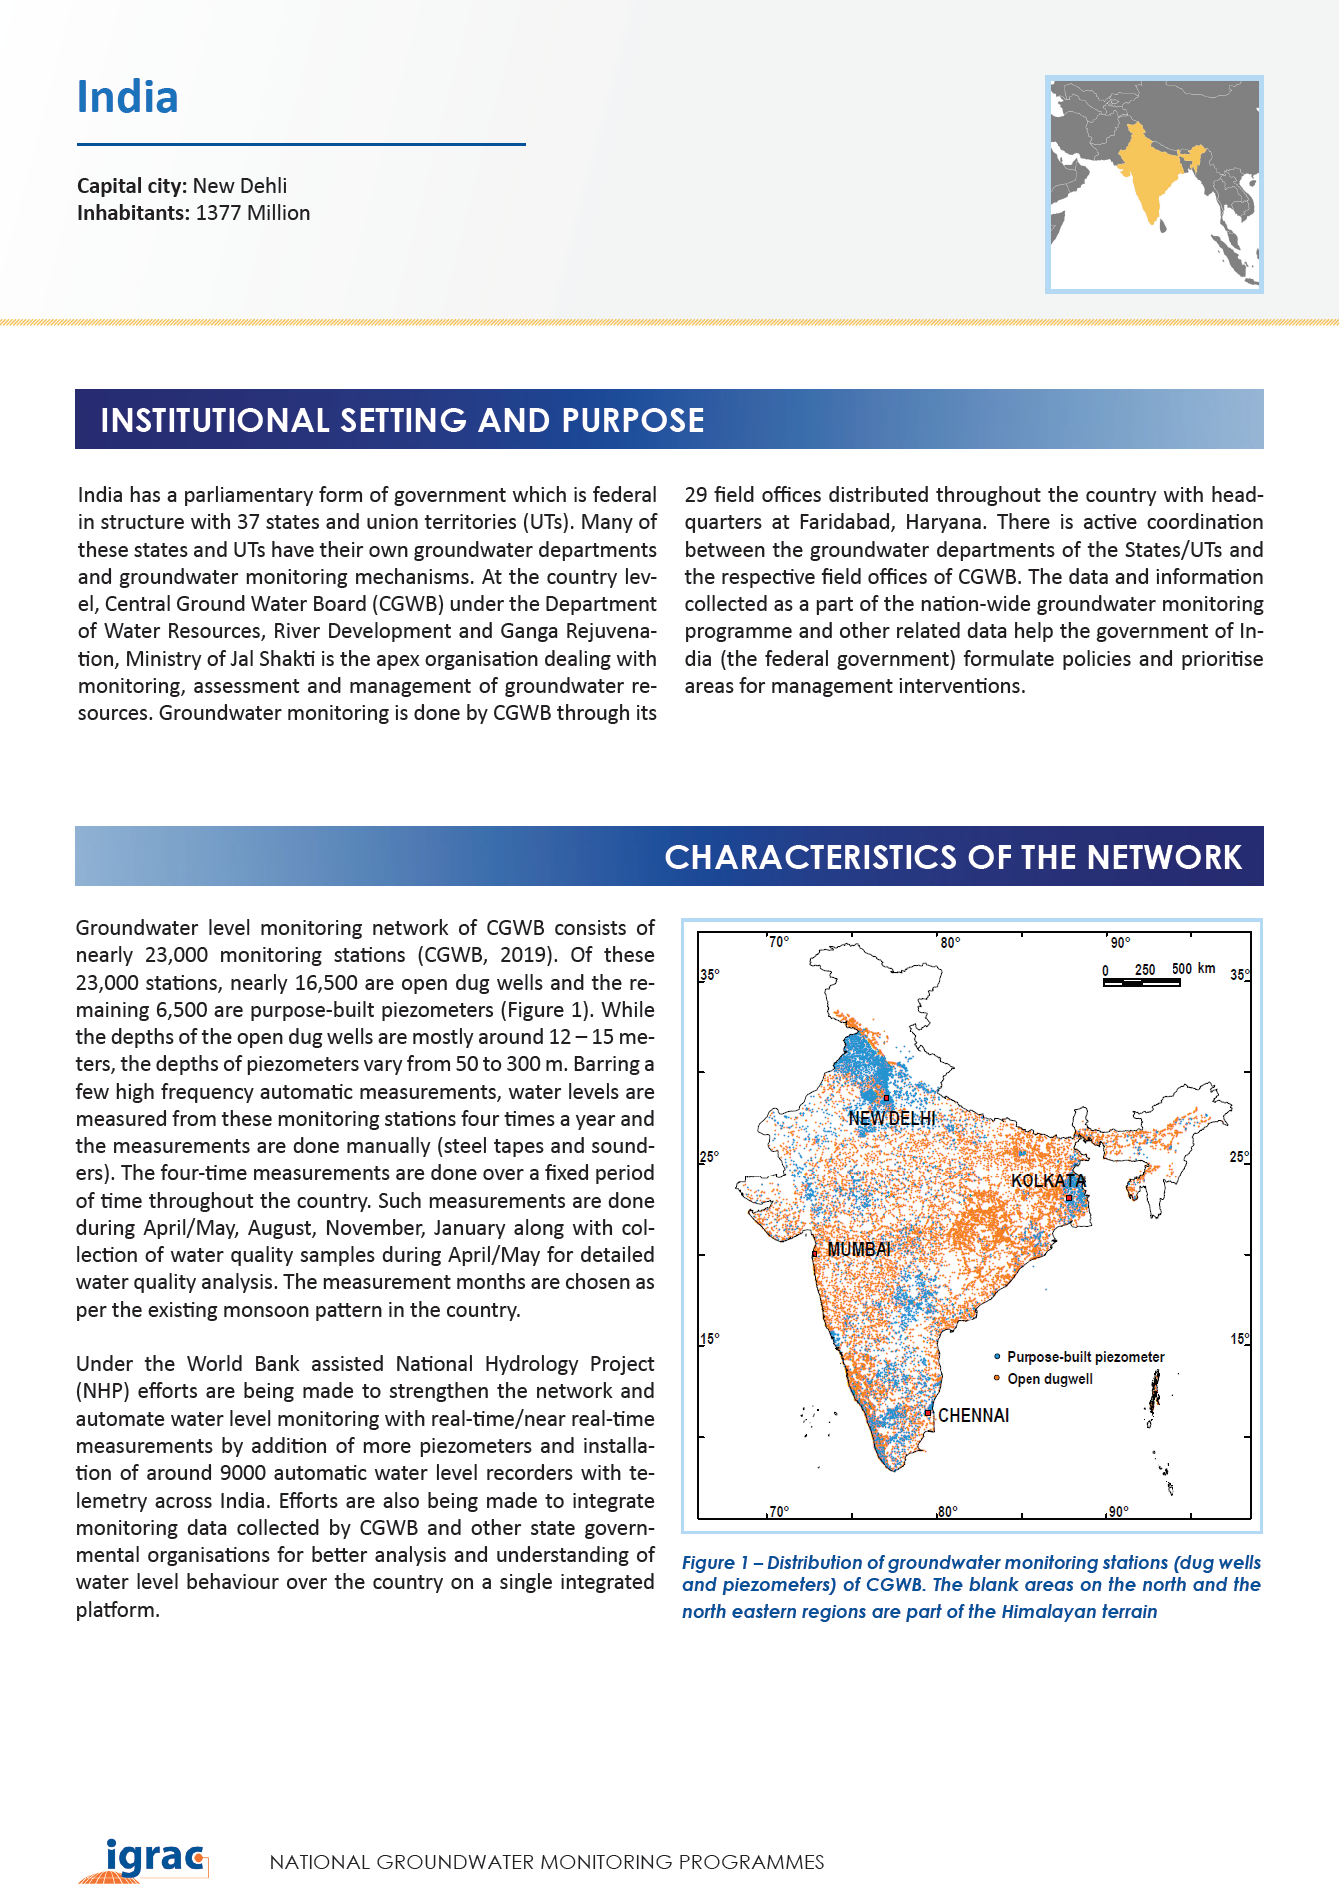 Groundwater monitoring country profile - India